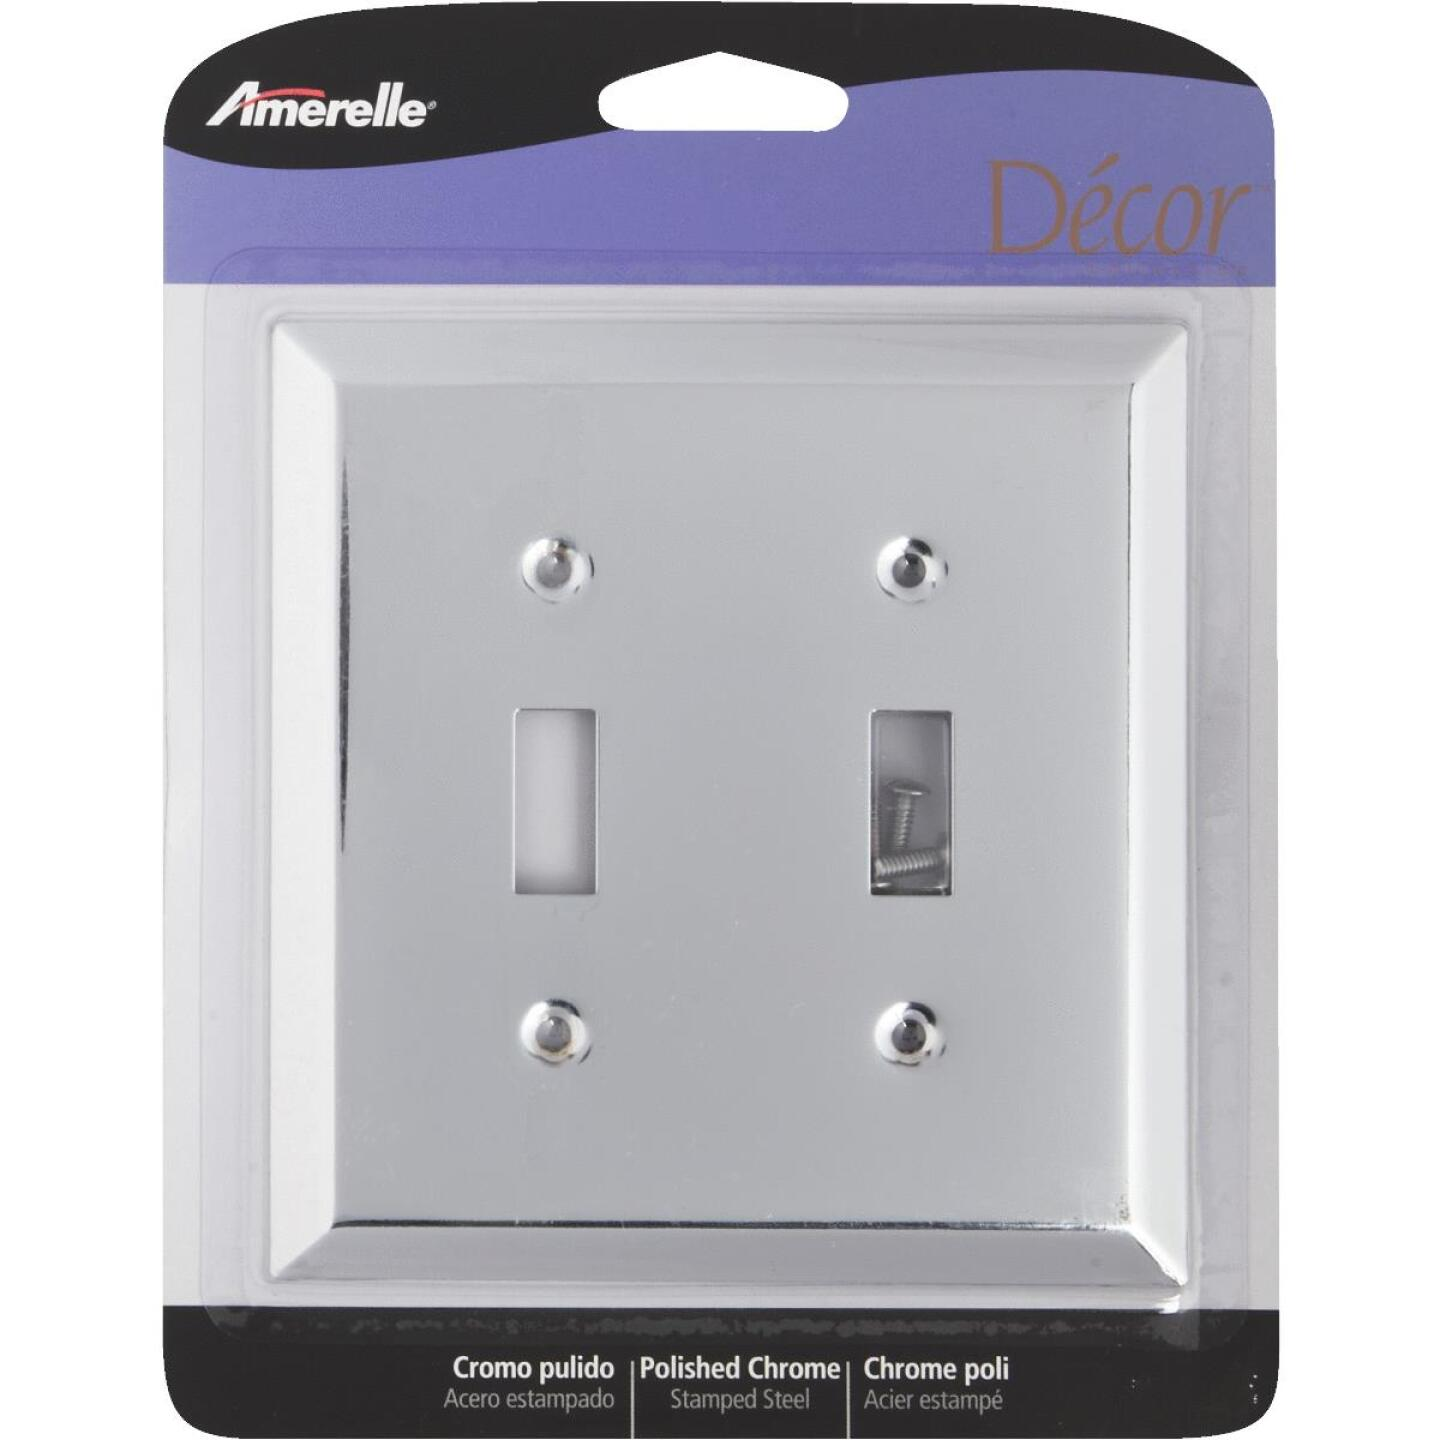 Amerelle 2-Gang Stamped Steel Toggle Switch Wall Plate, Polished Chrome Image 2